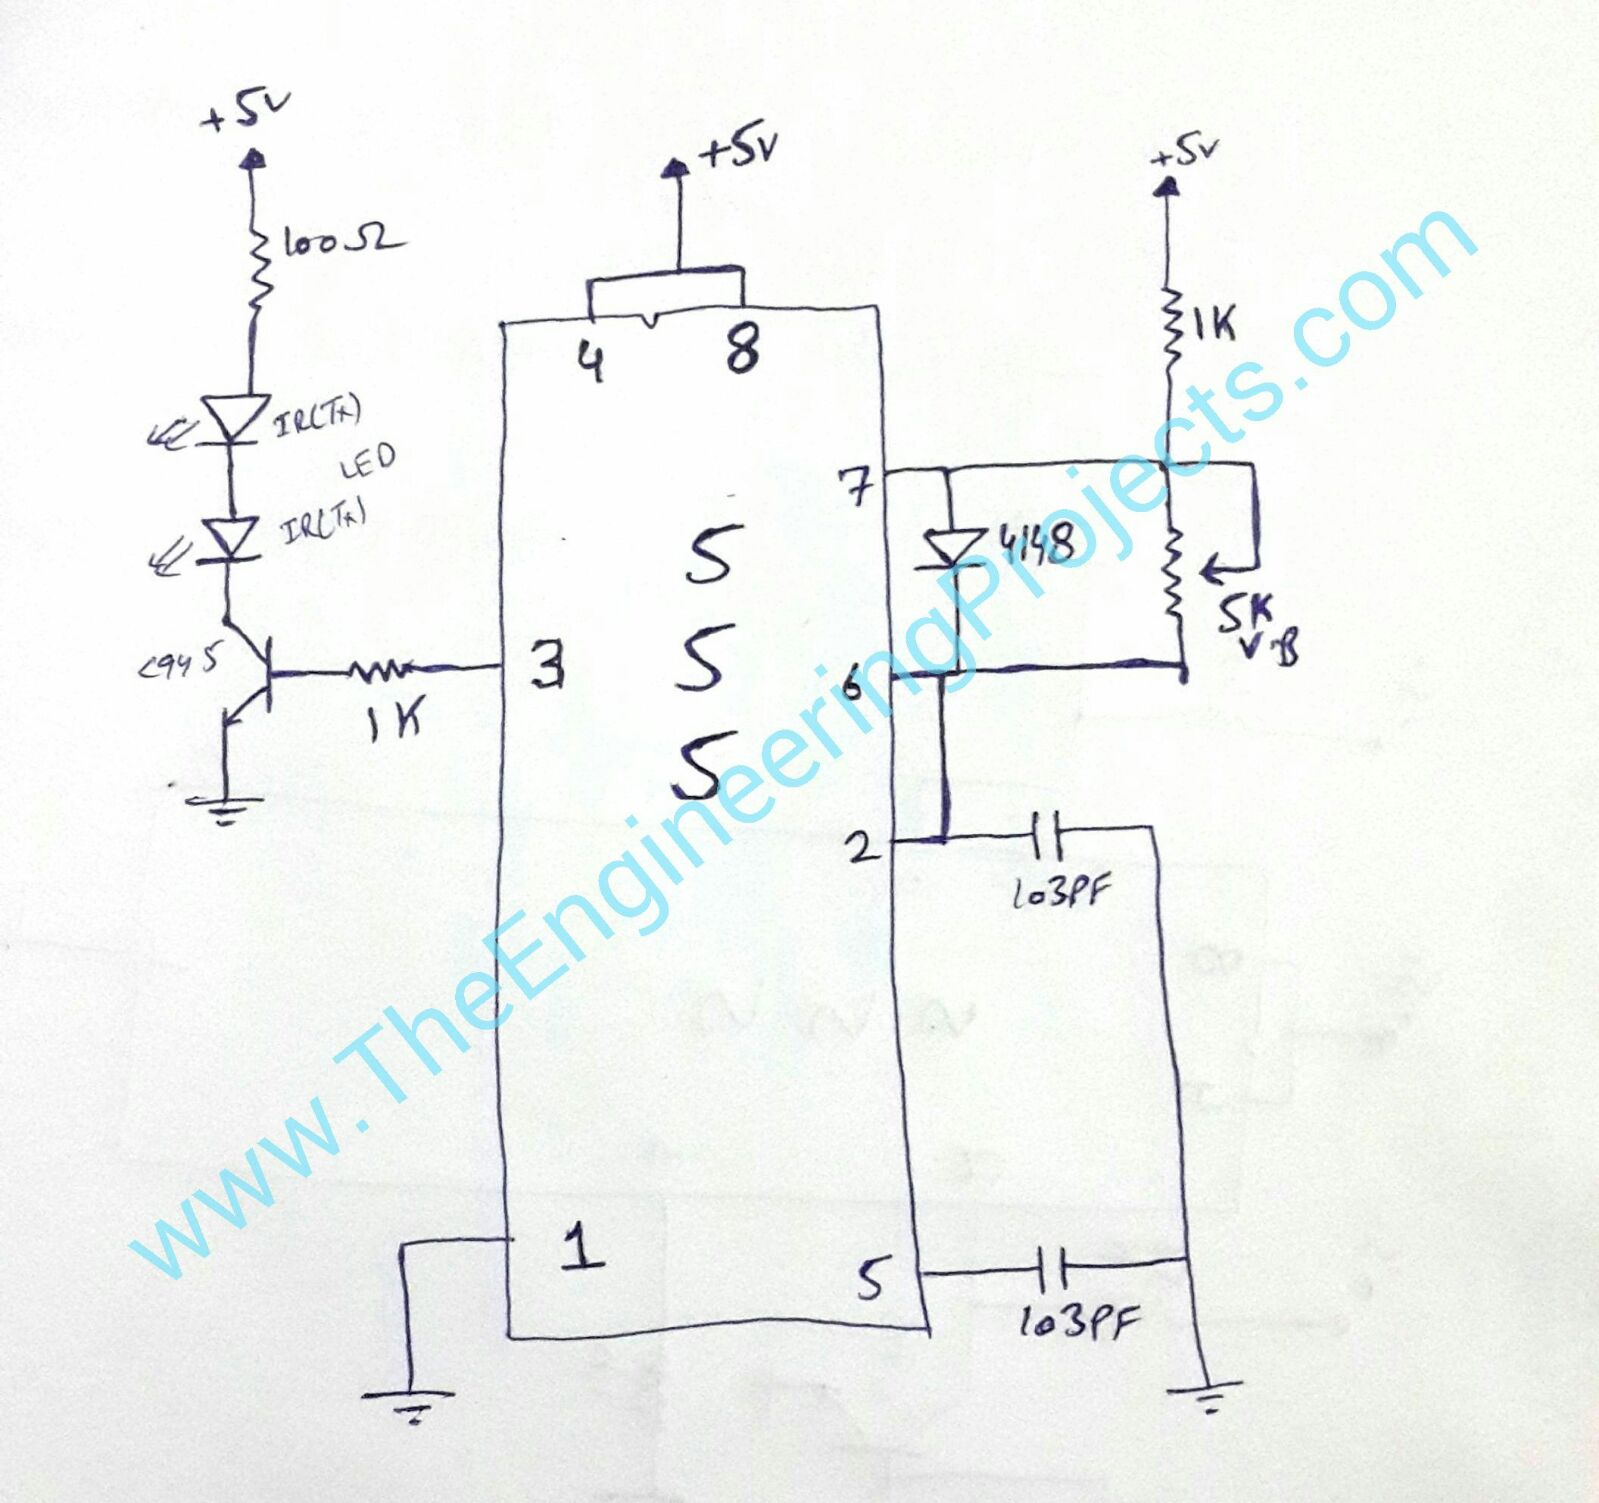 now we need to design the circuit diagram so design a circuit